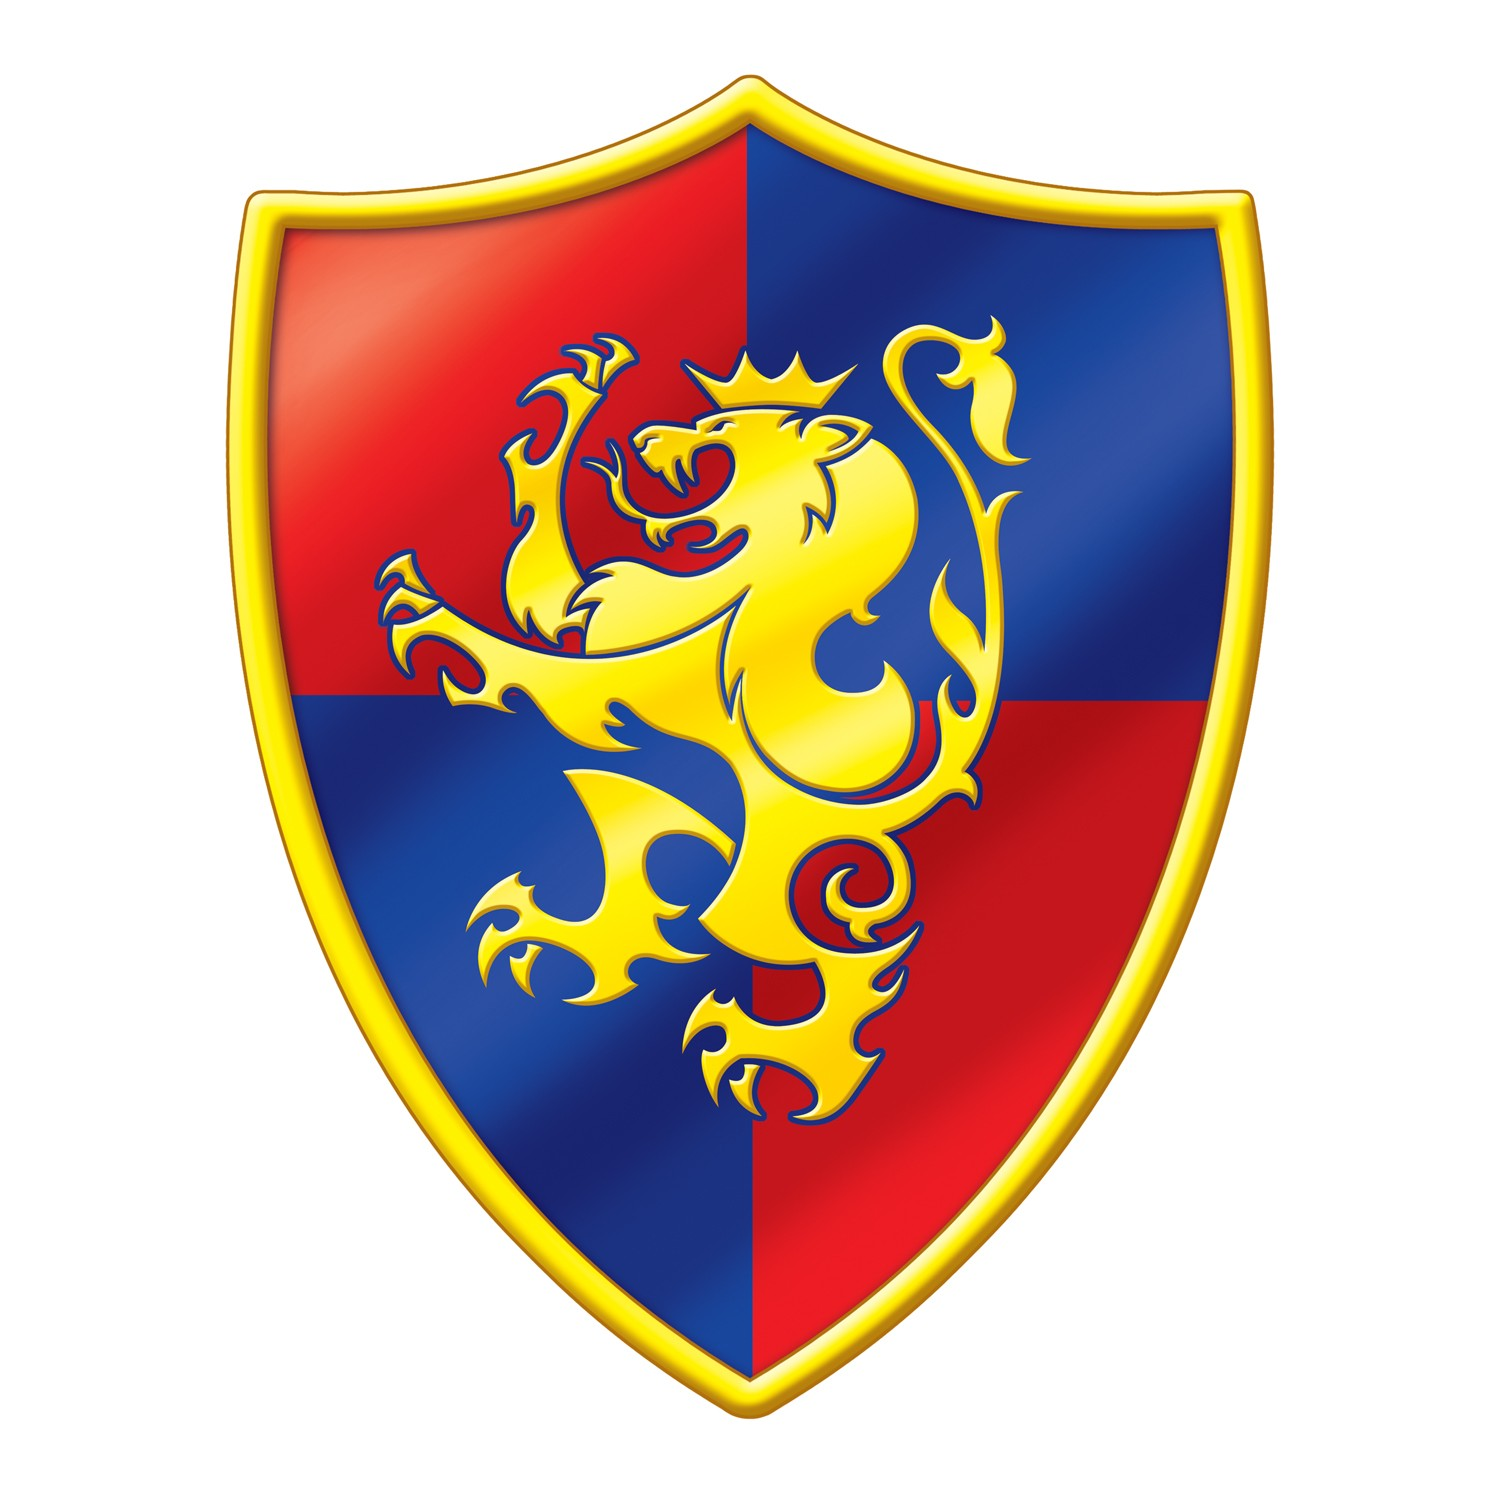 Medieval shield clipart.